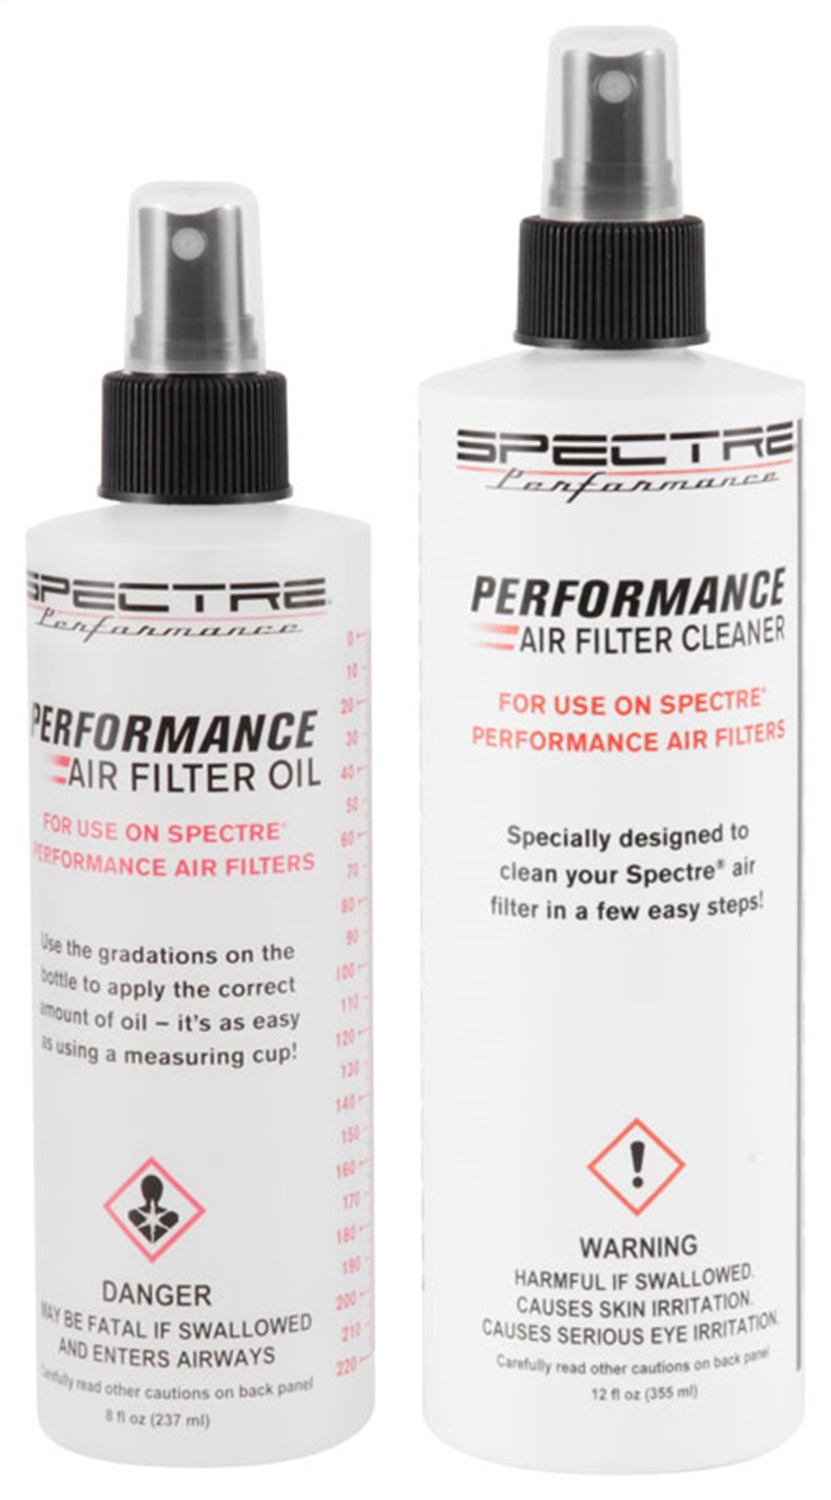 Spectre Performance 884820 Accu-Charge Filter Recharge Kit 884820